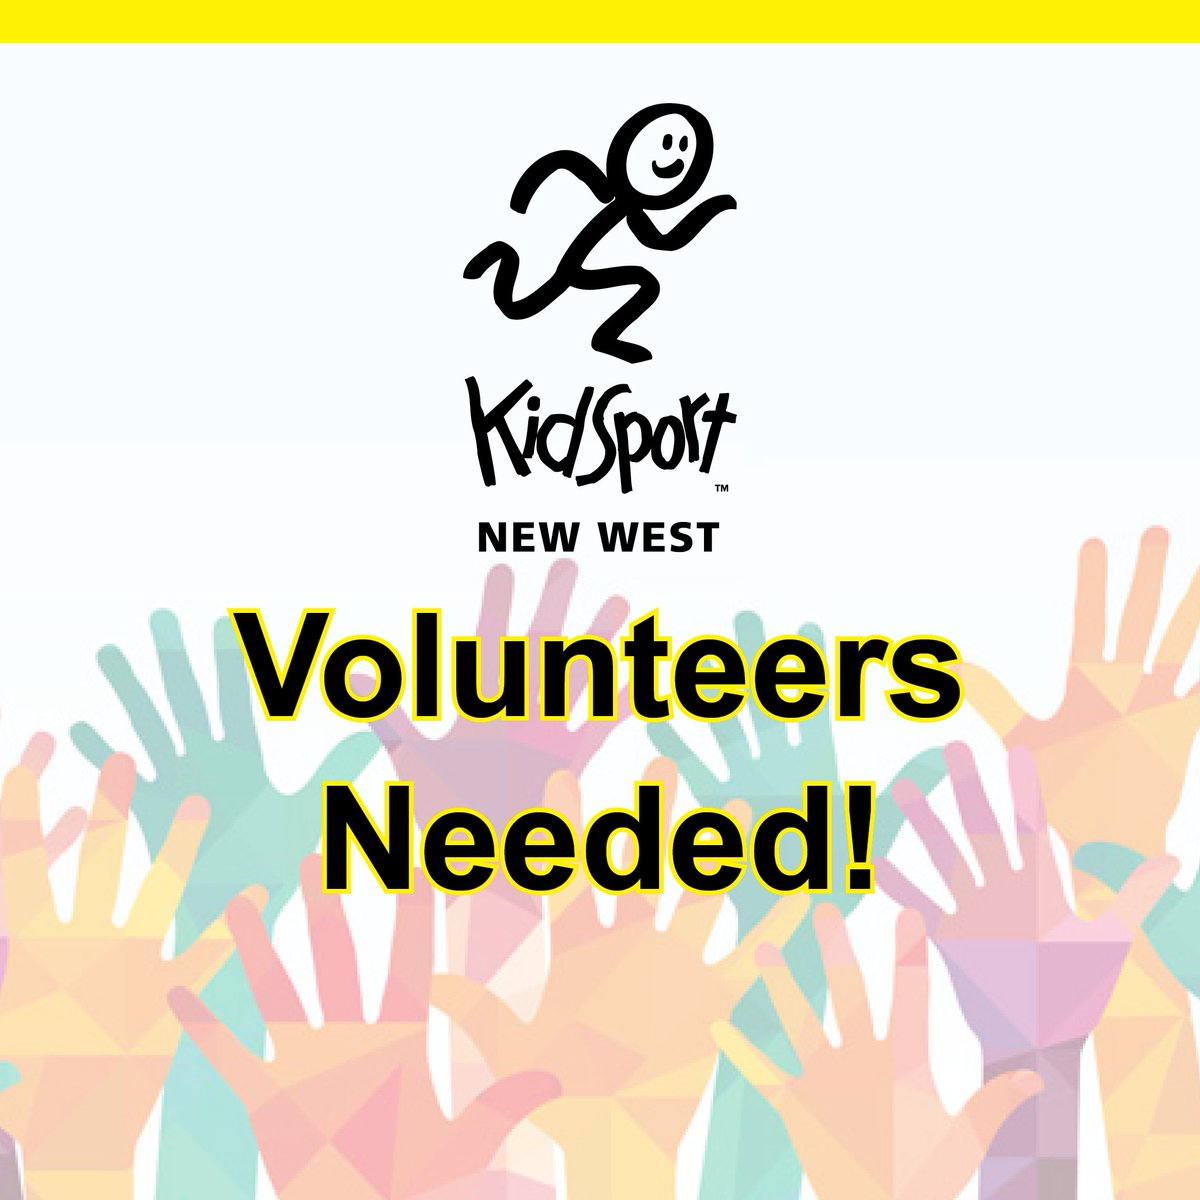 kidsport bc on twitter do you have skills in fundraising basic